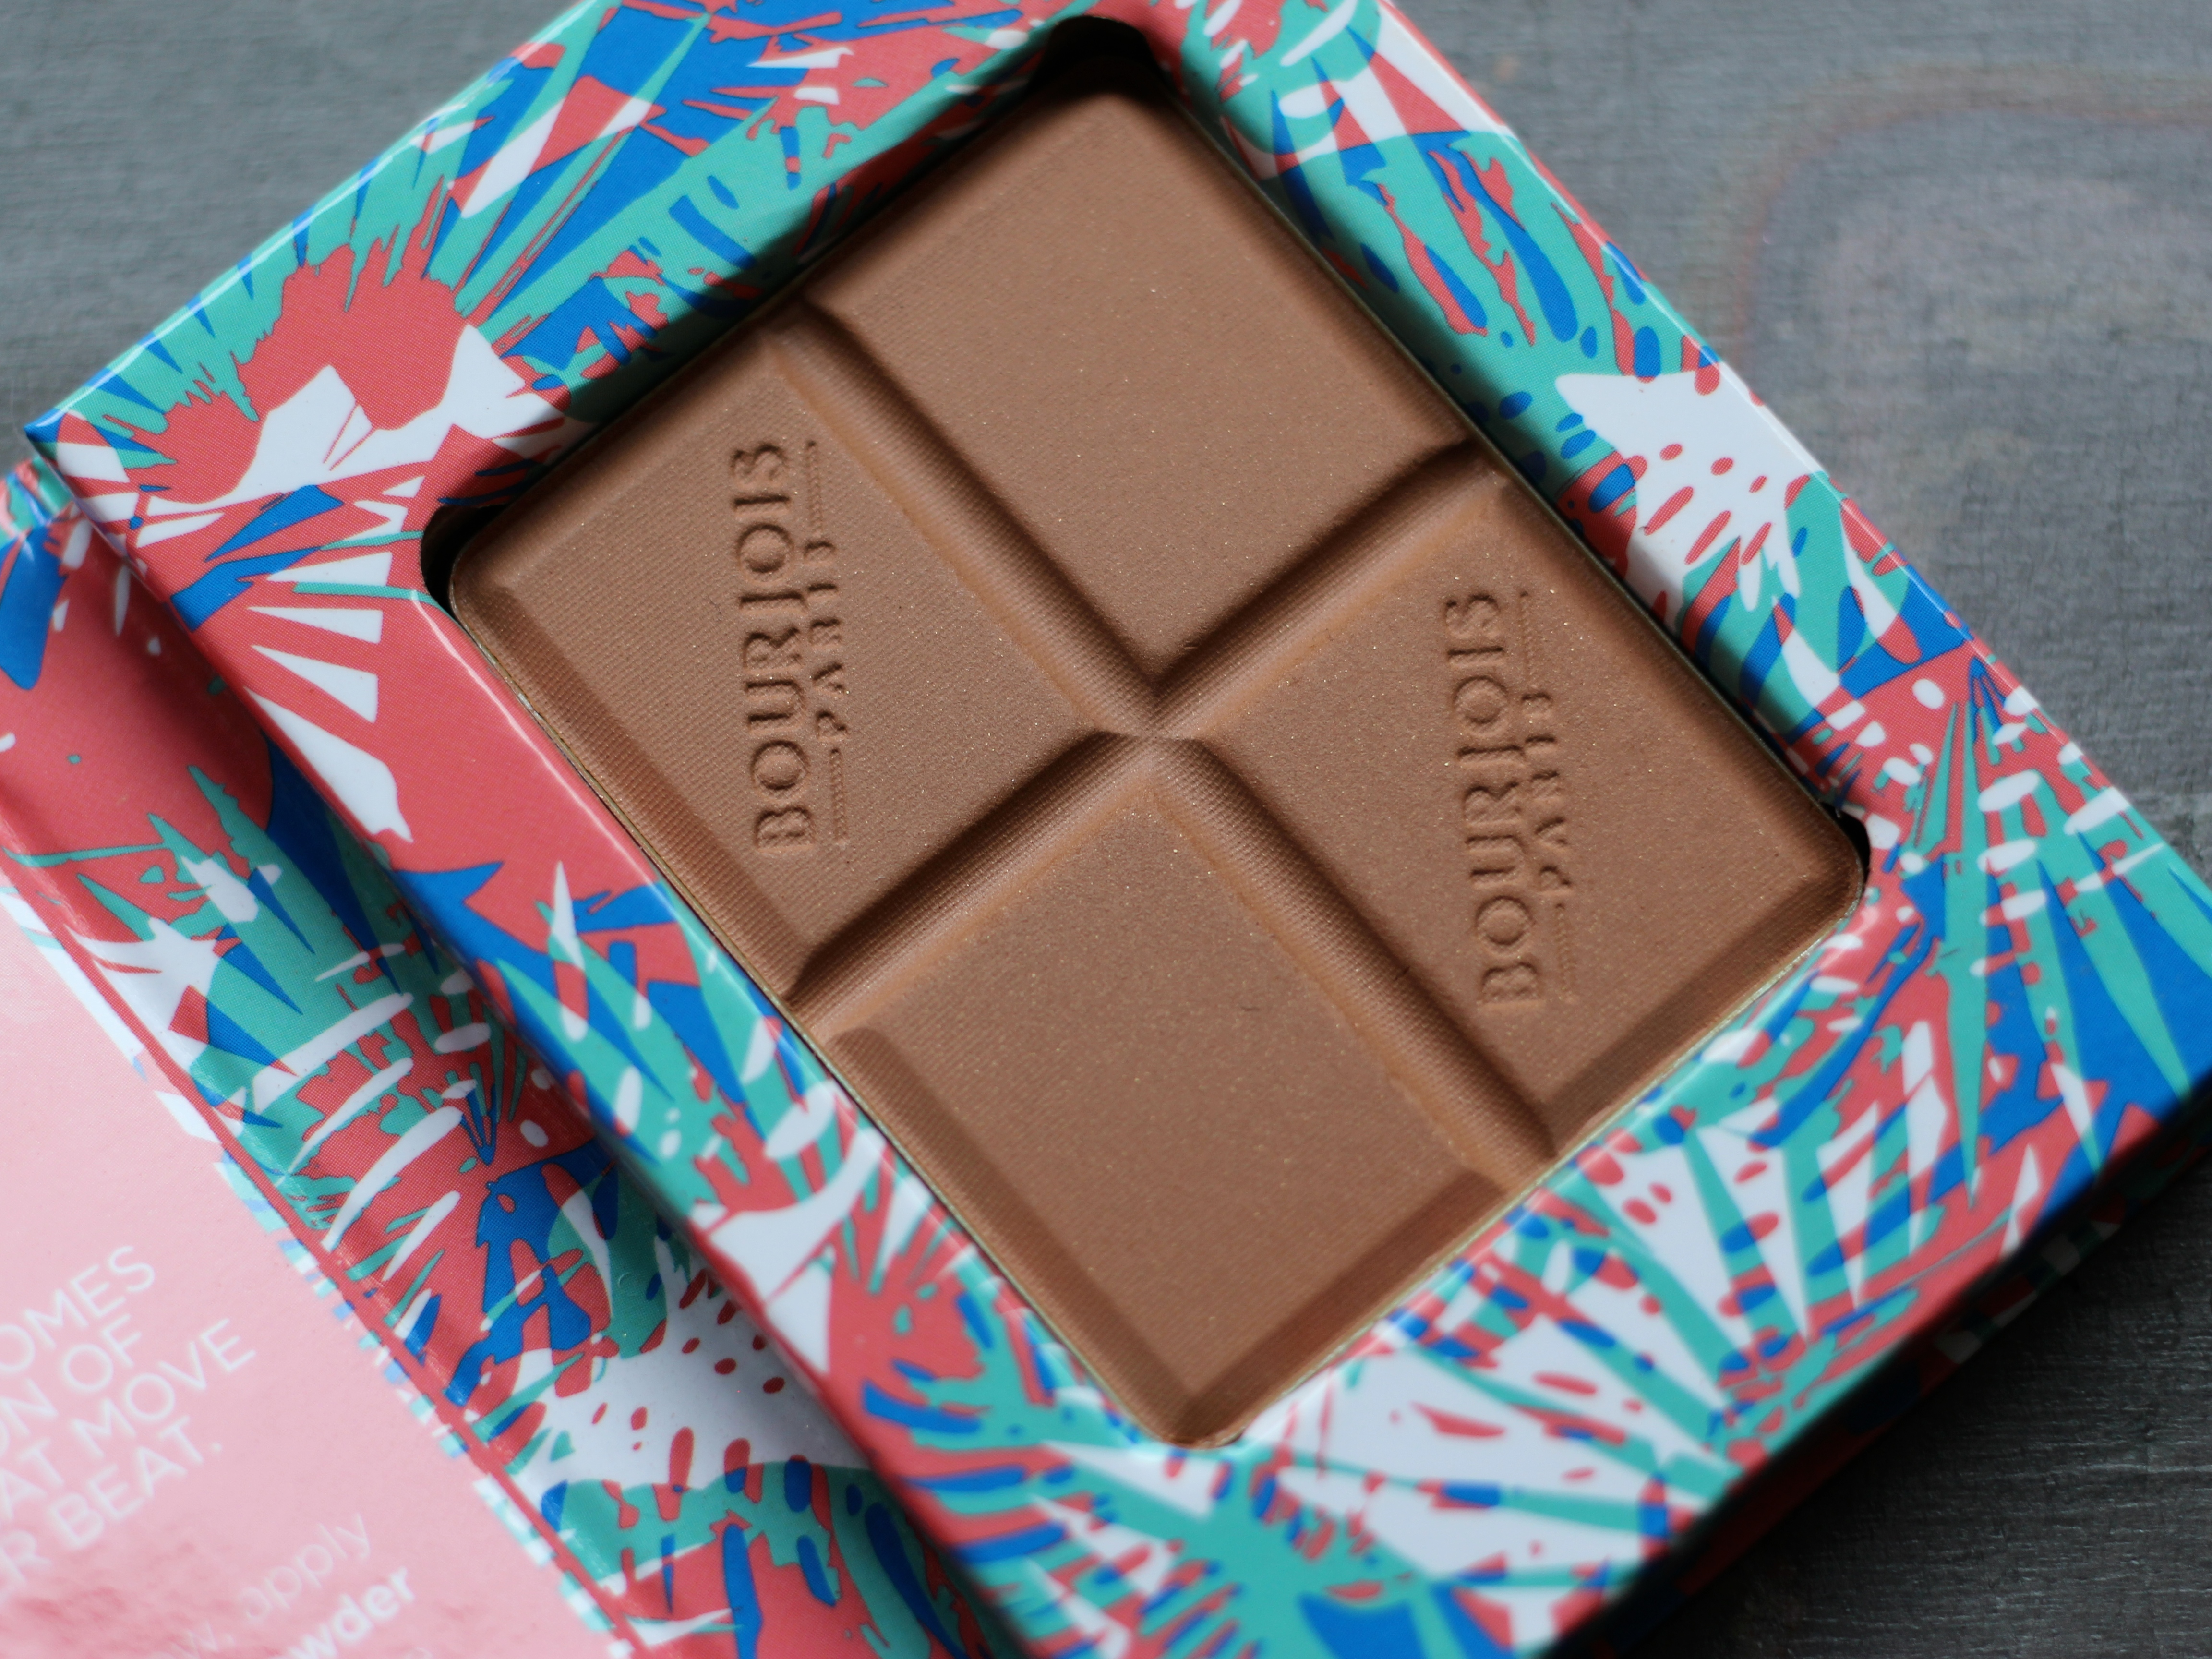 Bourjois Paris Bronzing Powder Tropical Festival Limited Edition Review